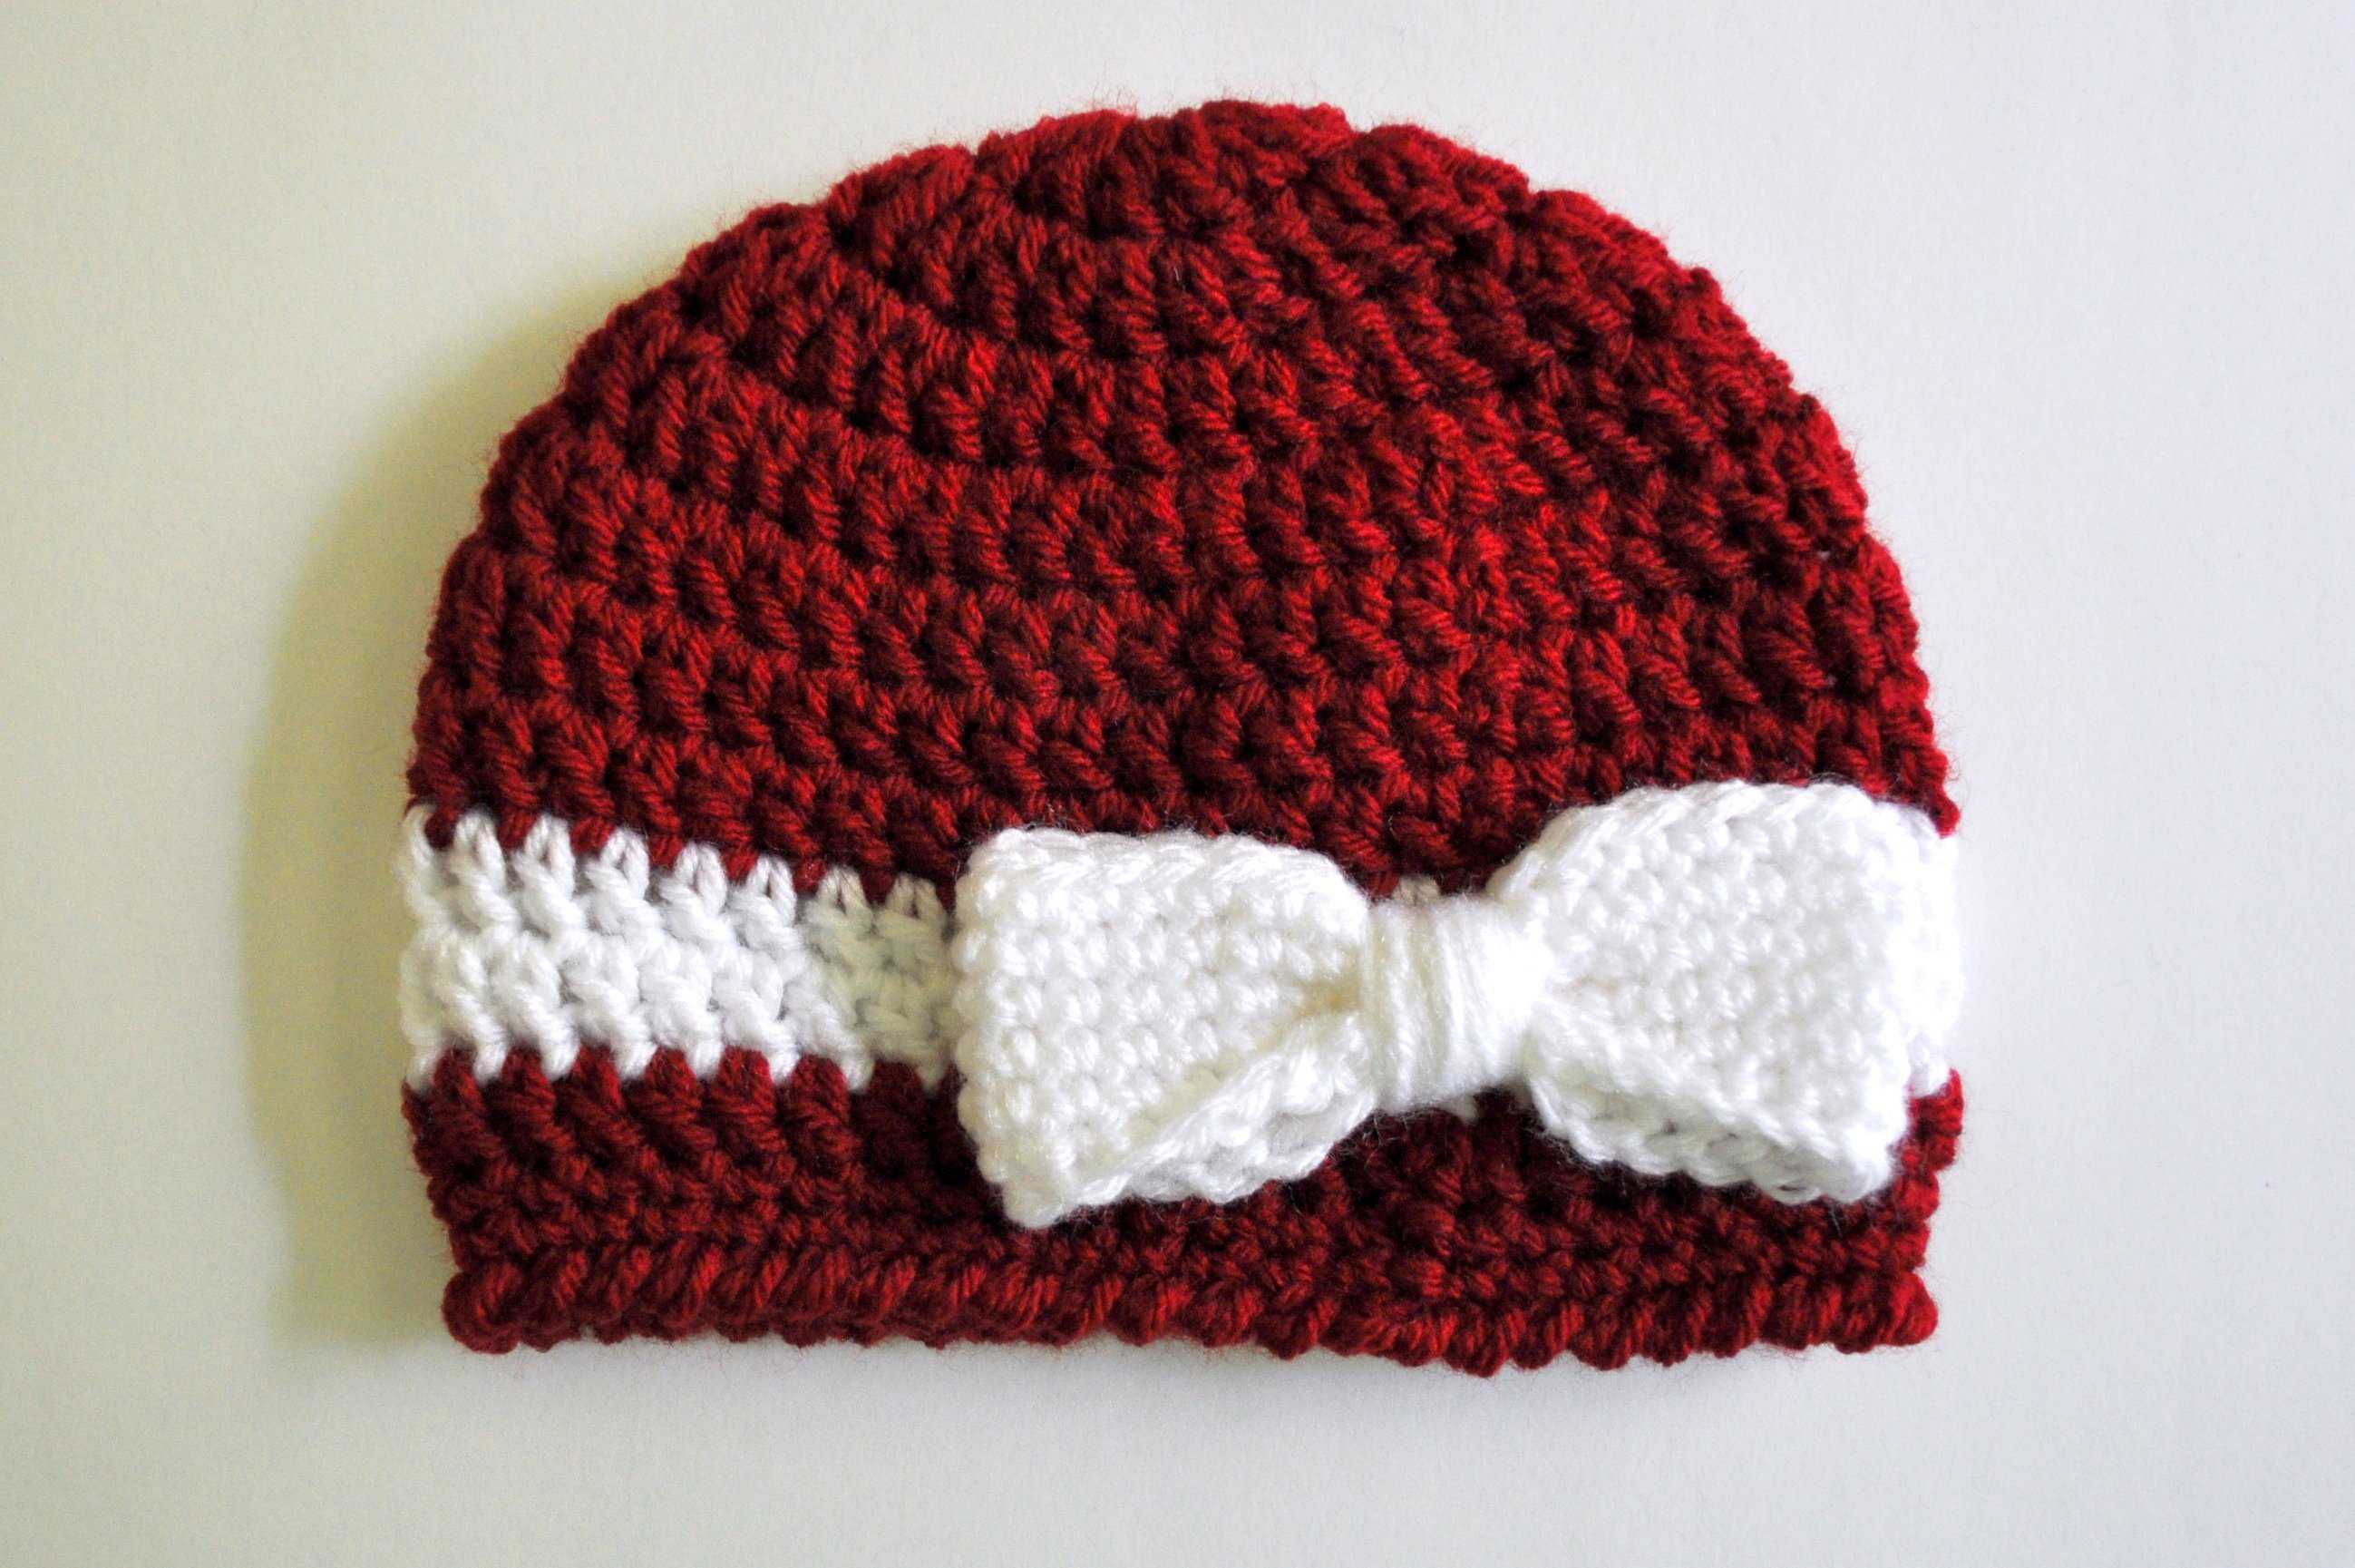 Free Crochet Pattern For Infant Hat : 25 Easy Crochet Bow Patterns Guide Patterns